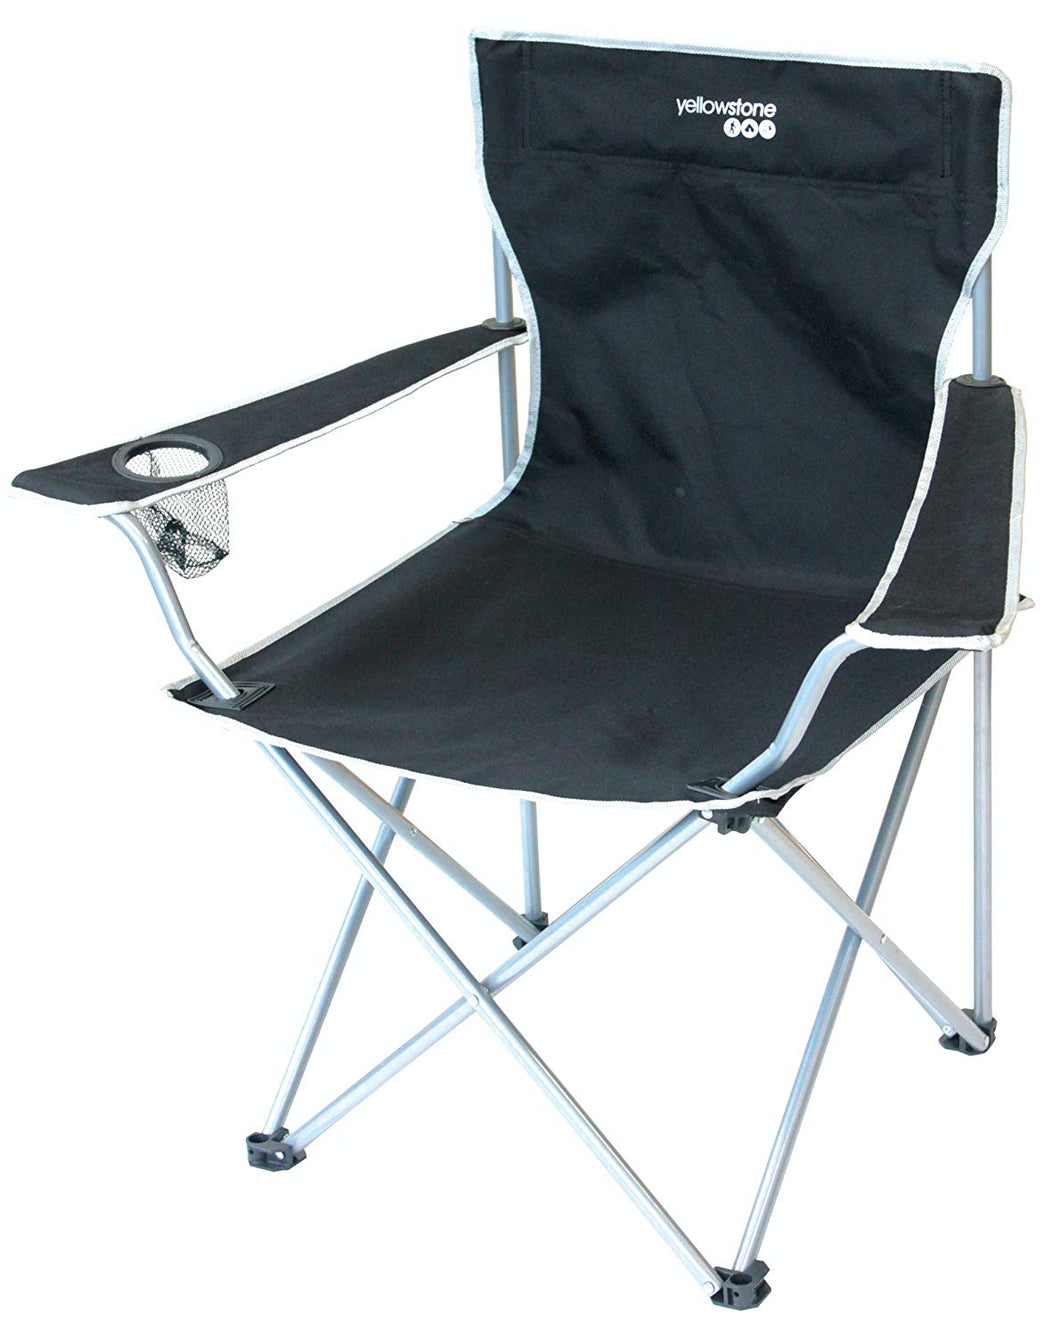 Yellowstone Outdoor Camping Executive Camping Chair - Black